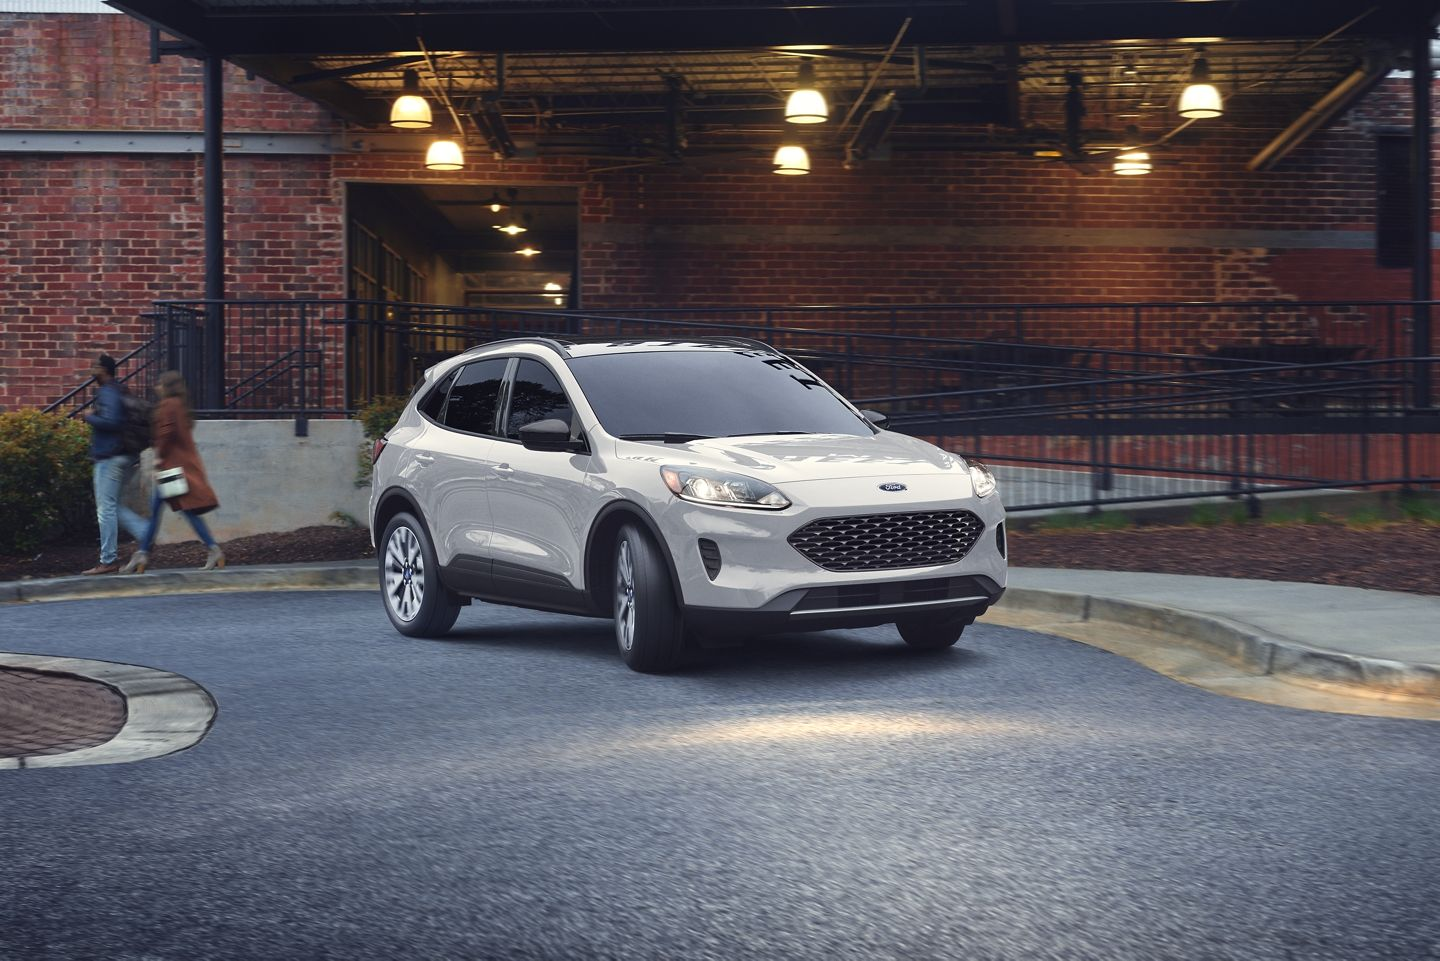 The Ford Escape Was Completely Redesigned For 2020 Learn More About Fourth Generation Of This Popular Suv Ford Escape Suv Ford 2020